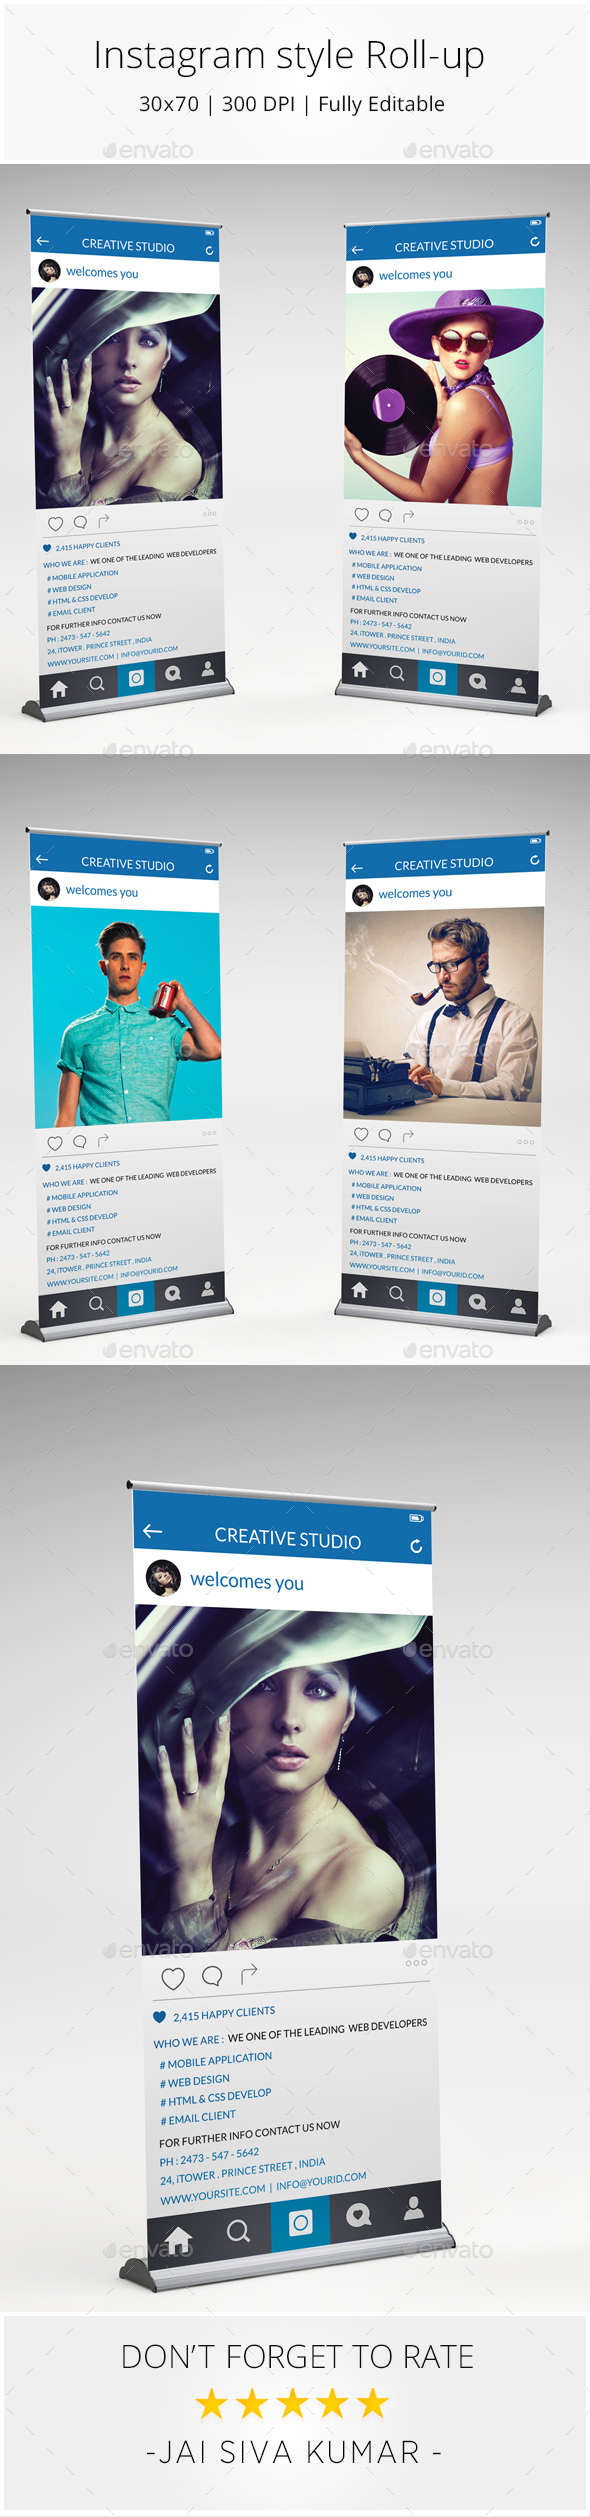 Instagram Style Rollup Banner - Signage Print Templates